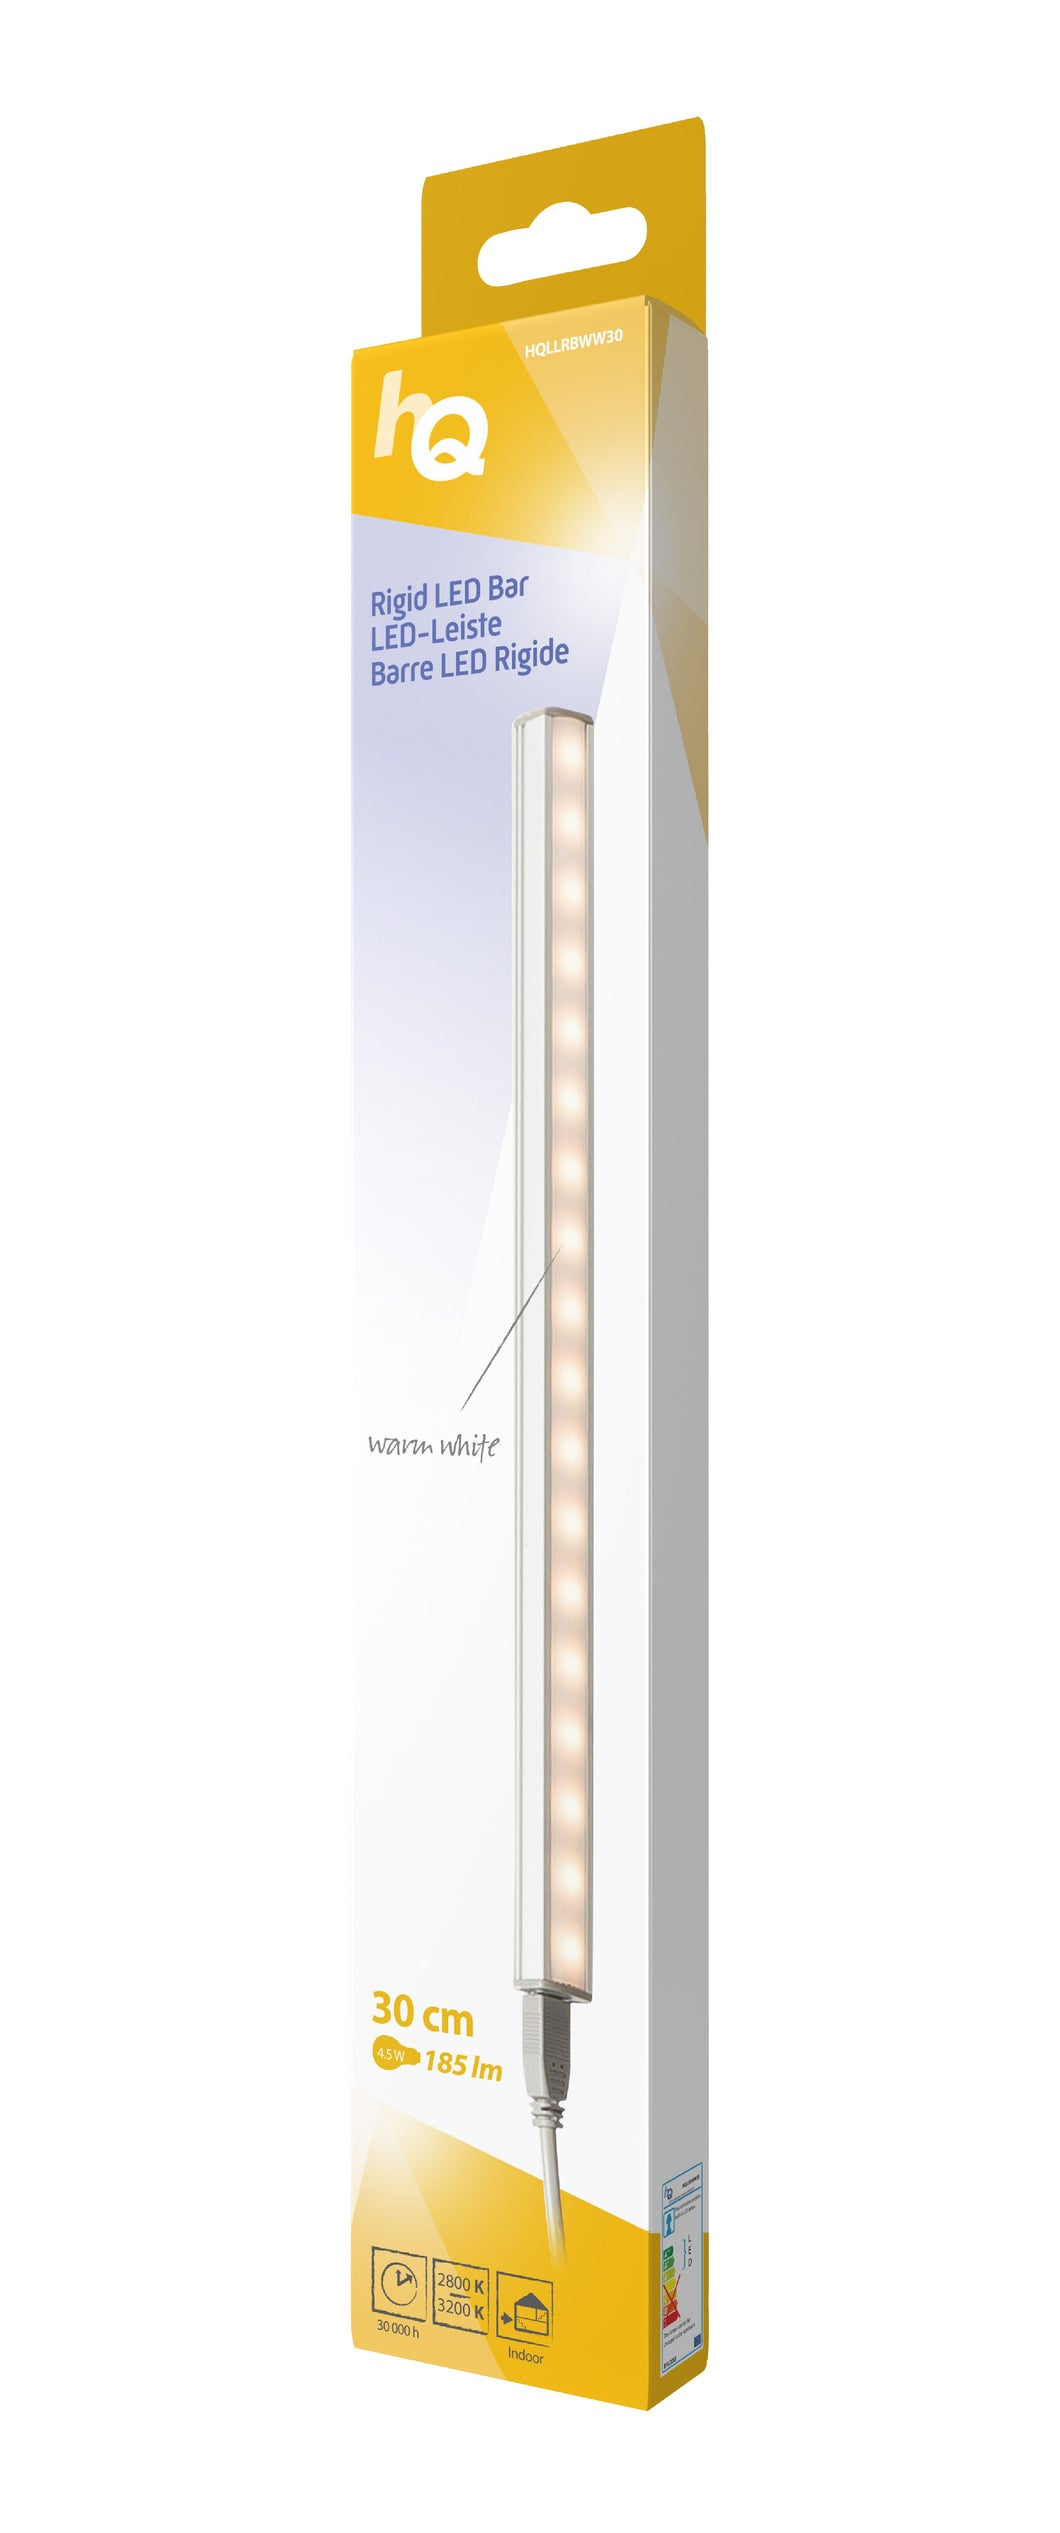 LED-Leiste starr 4.5 W 185 lm Warmweiss - 30 cm